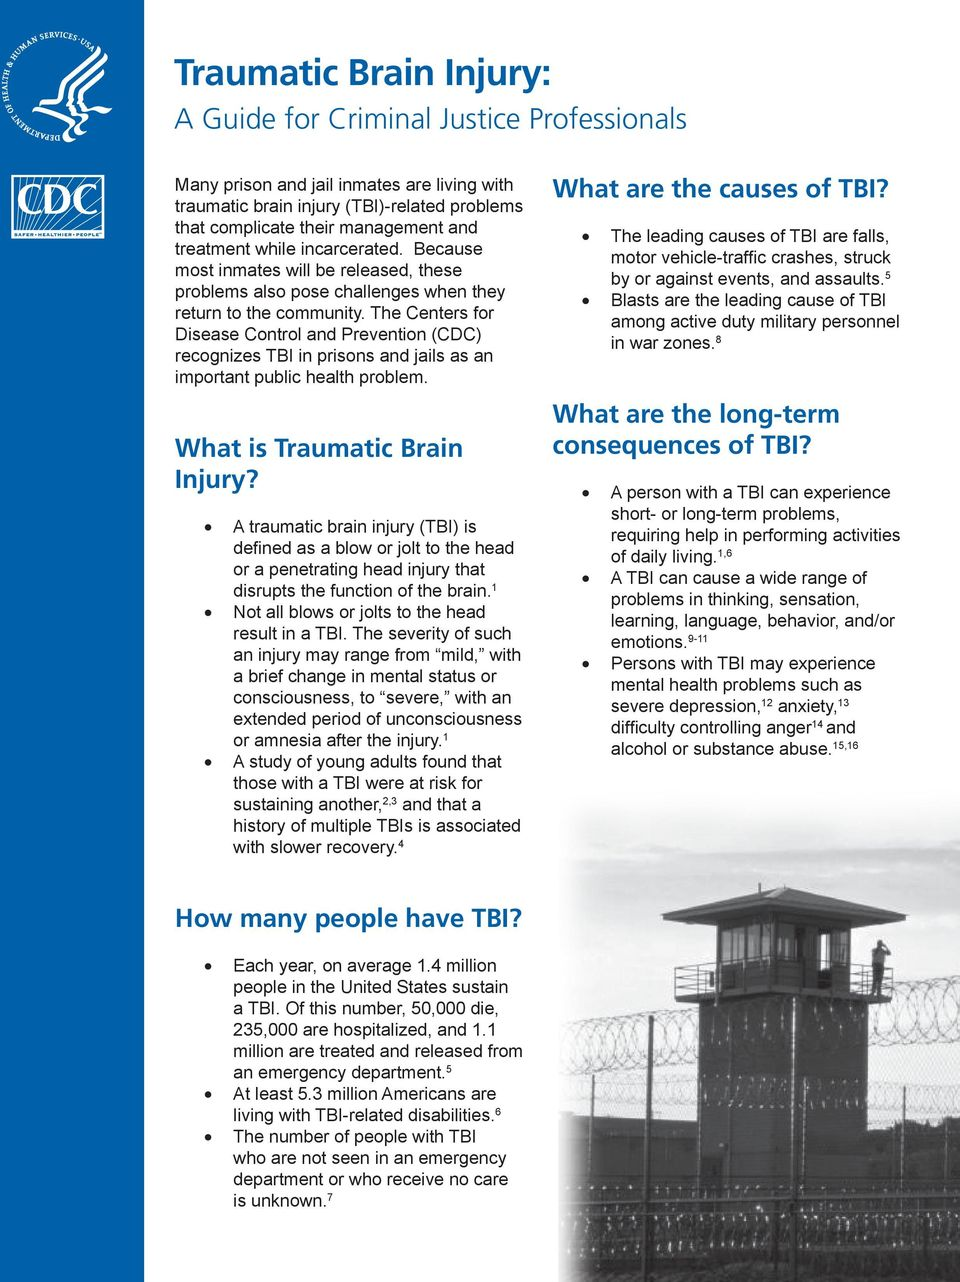 The Centers for Disease Control and Prevention (CDC) recognizes TBI in prisons and jails as an important public health problem. What is Traumatic Brain Injury?